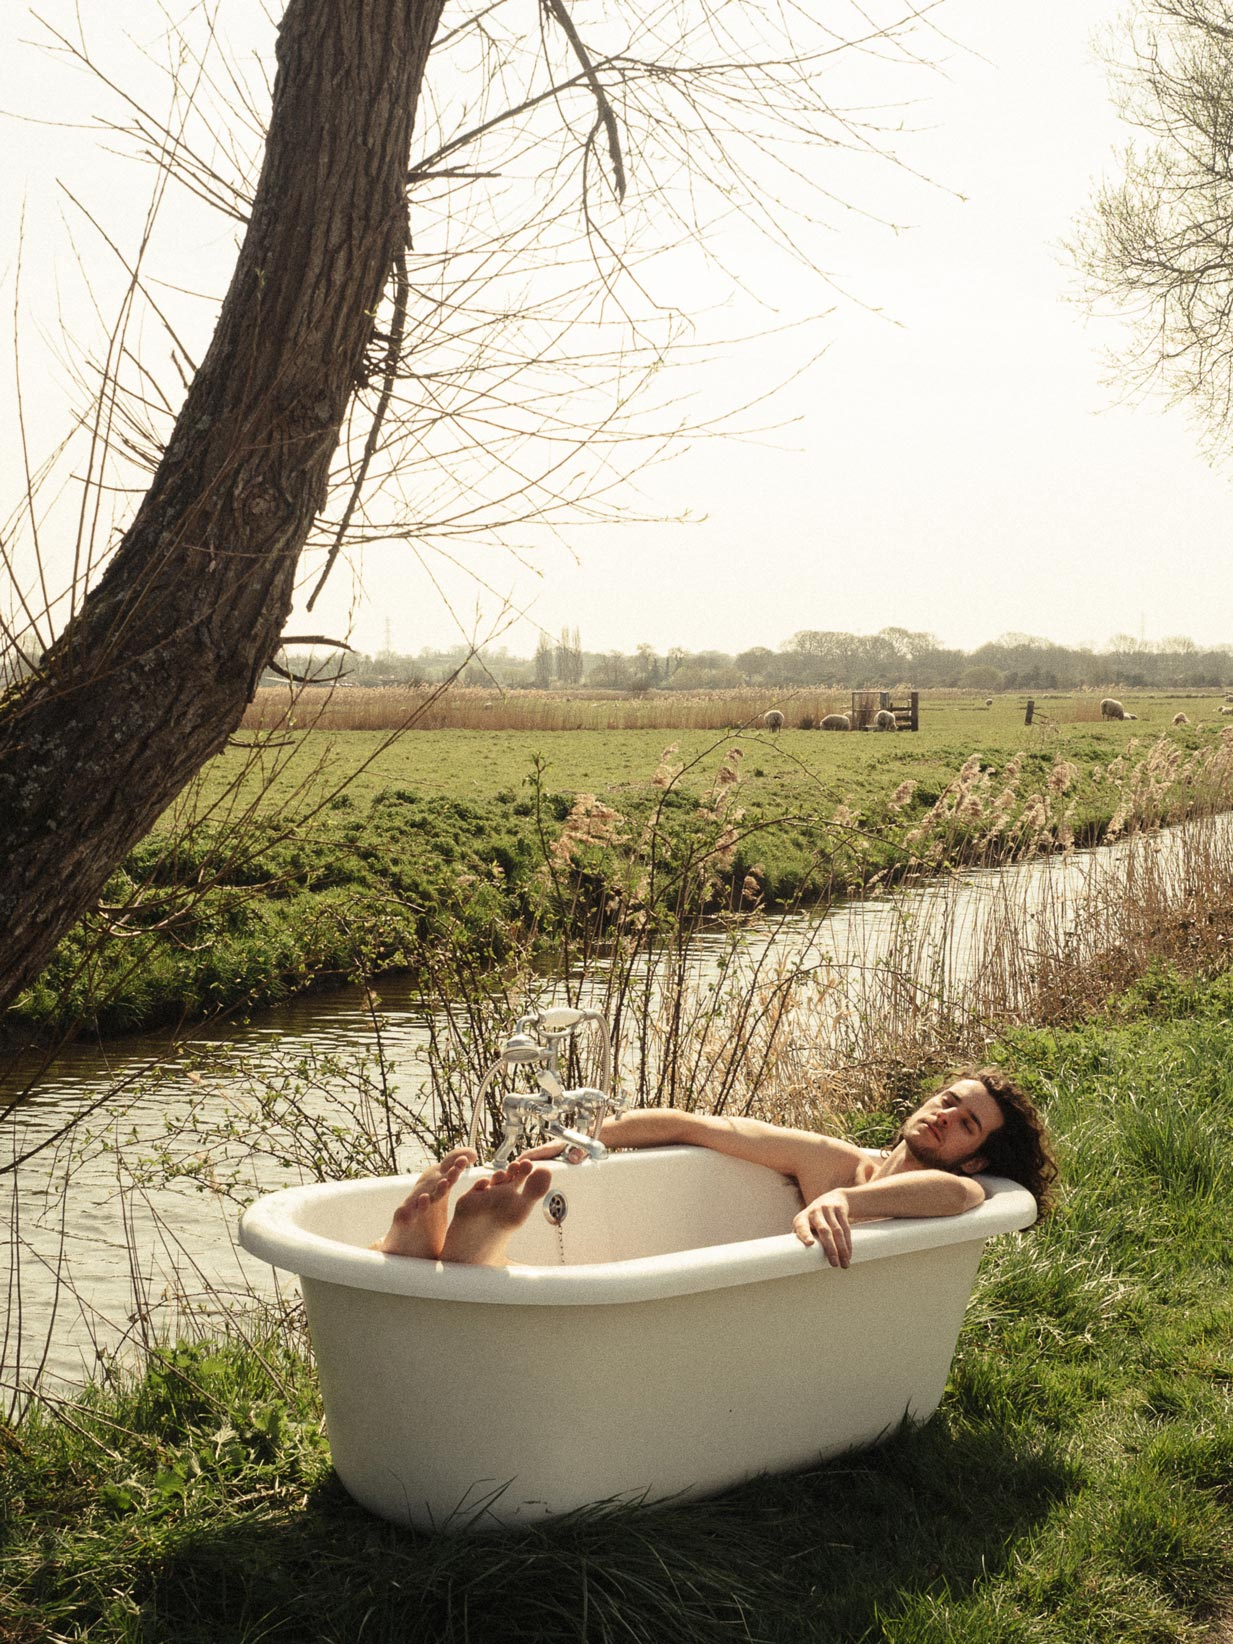 man sat in bath placed in a field